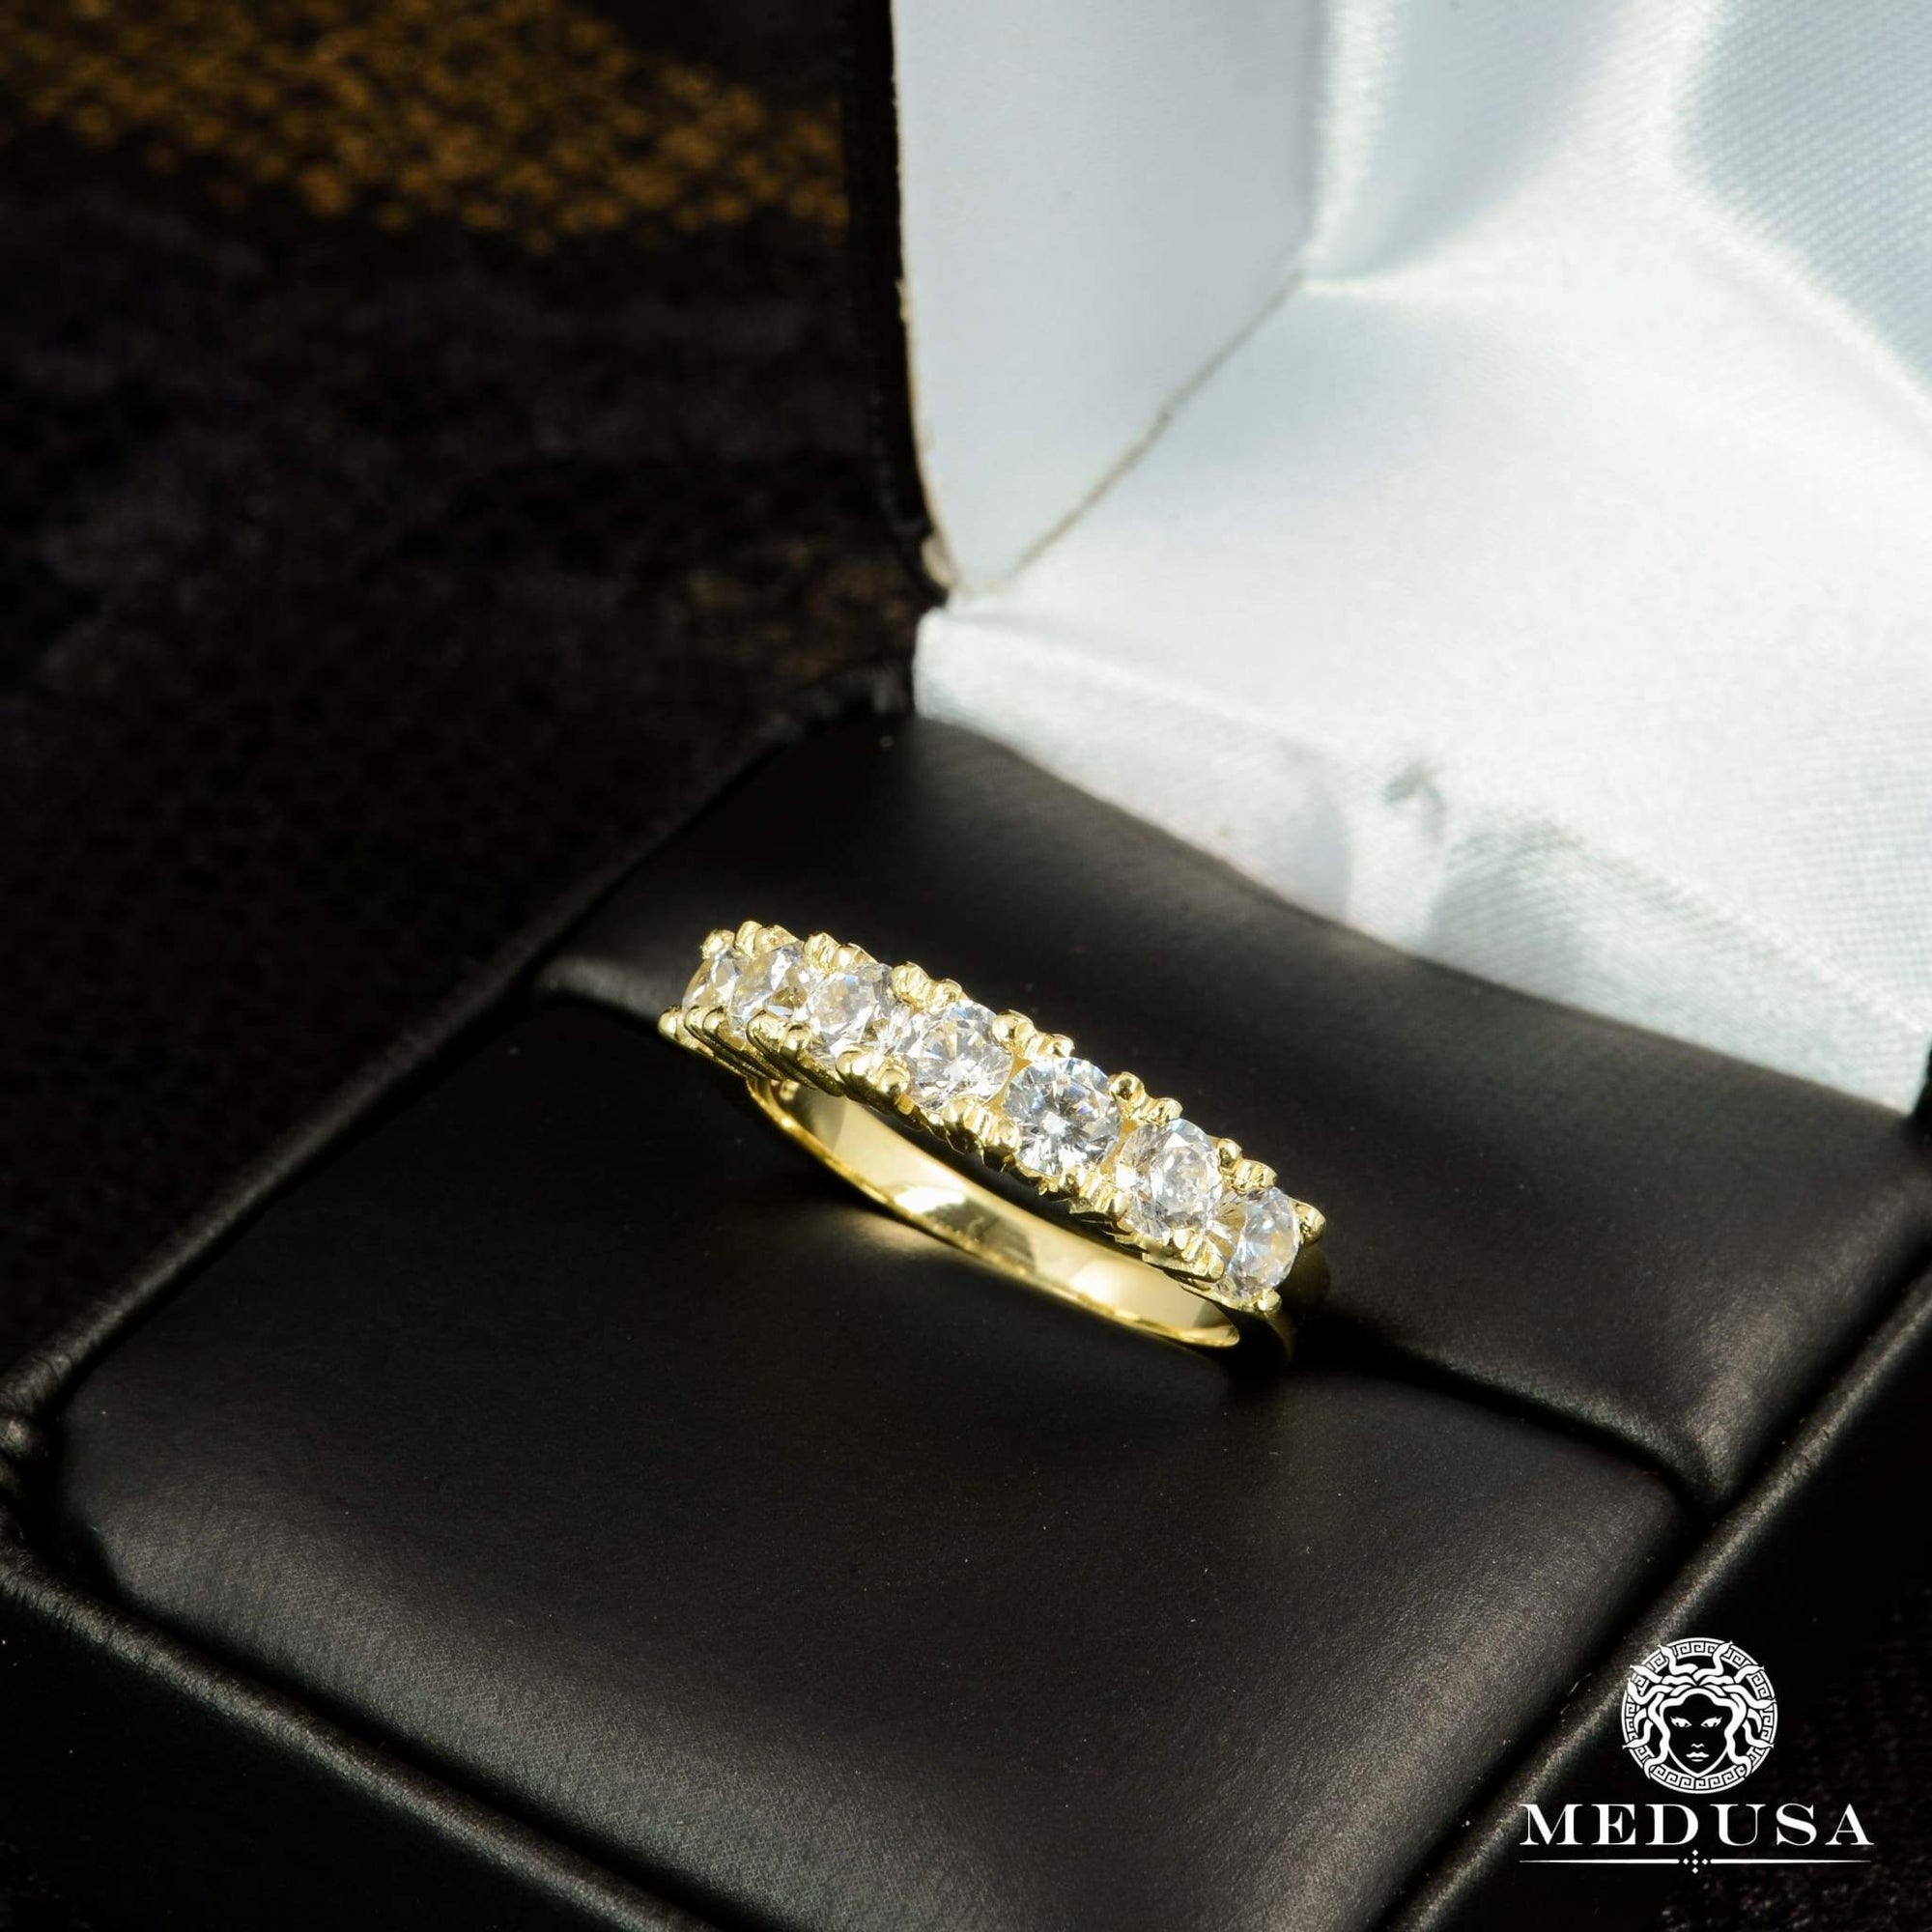 Bague à Diamants en Or 14K | Bague Fiançaille Eternity F16 - MA0634 Or Jaune